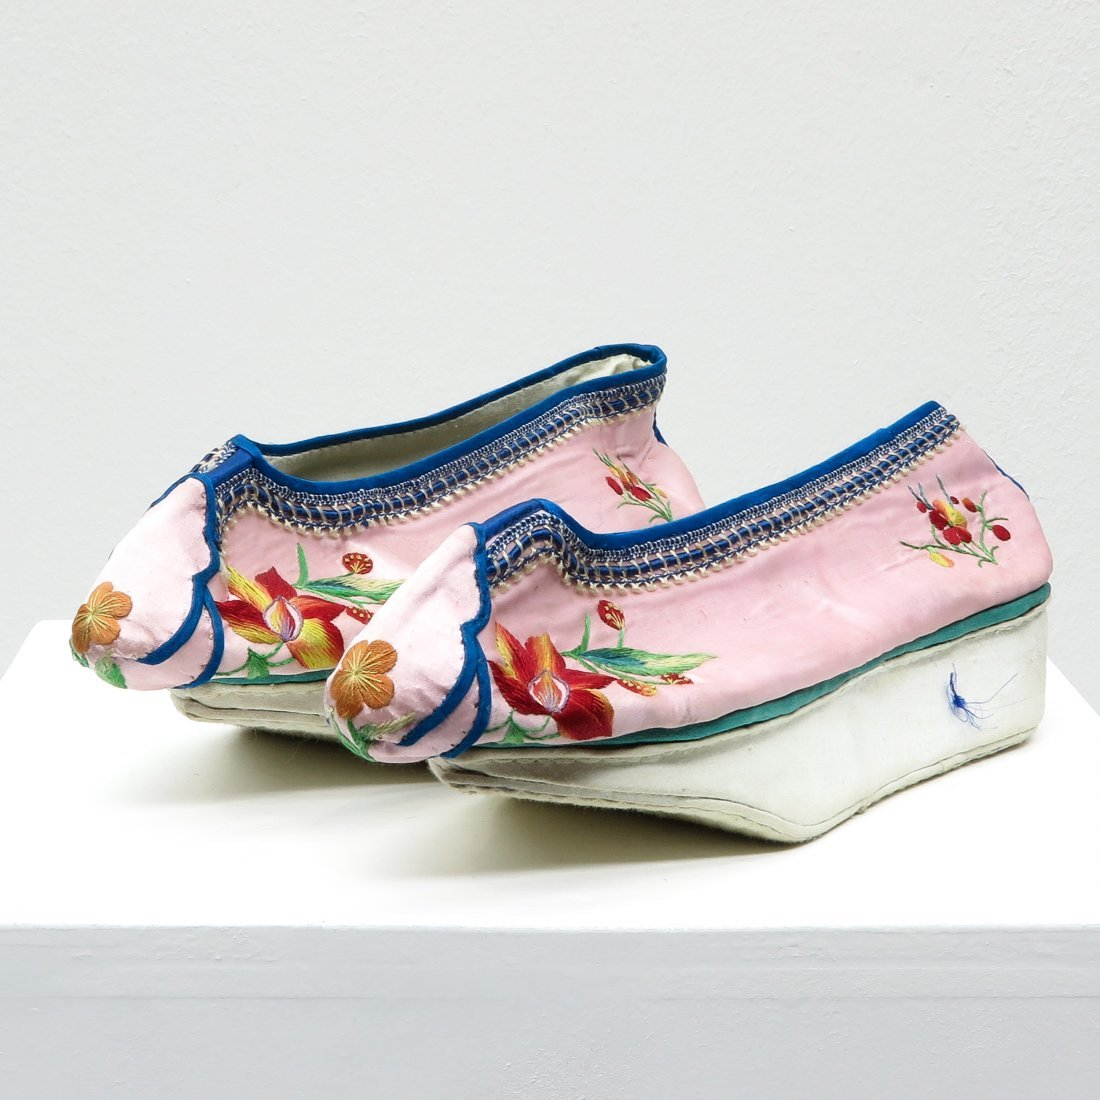 Pair of Embroidered Chinese Silk Shoes